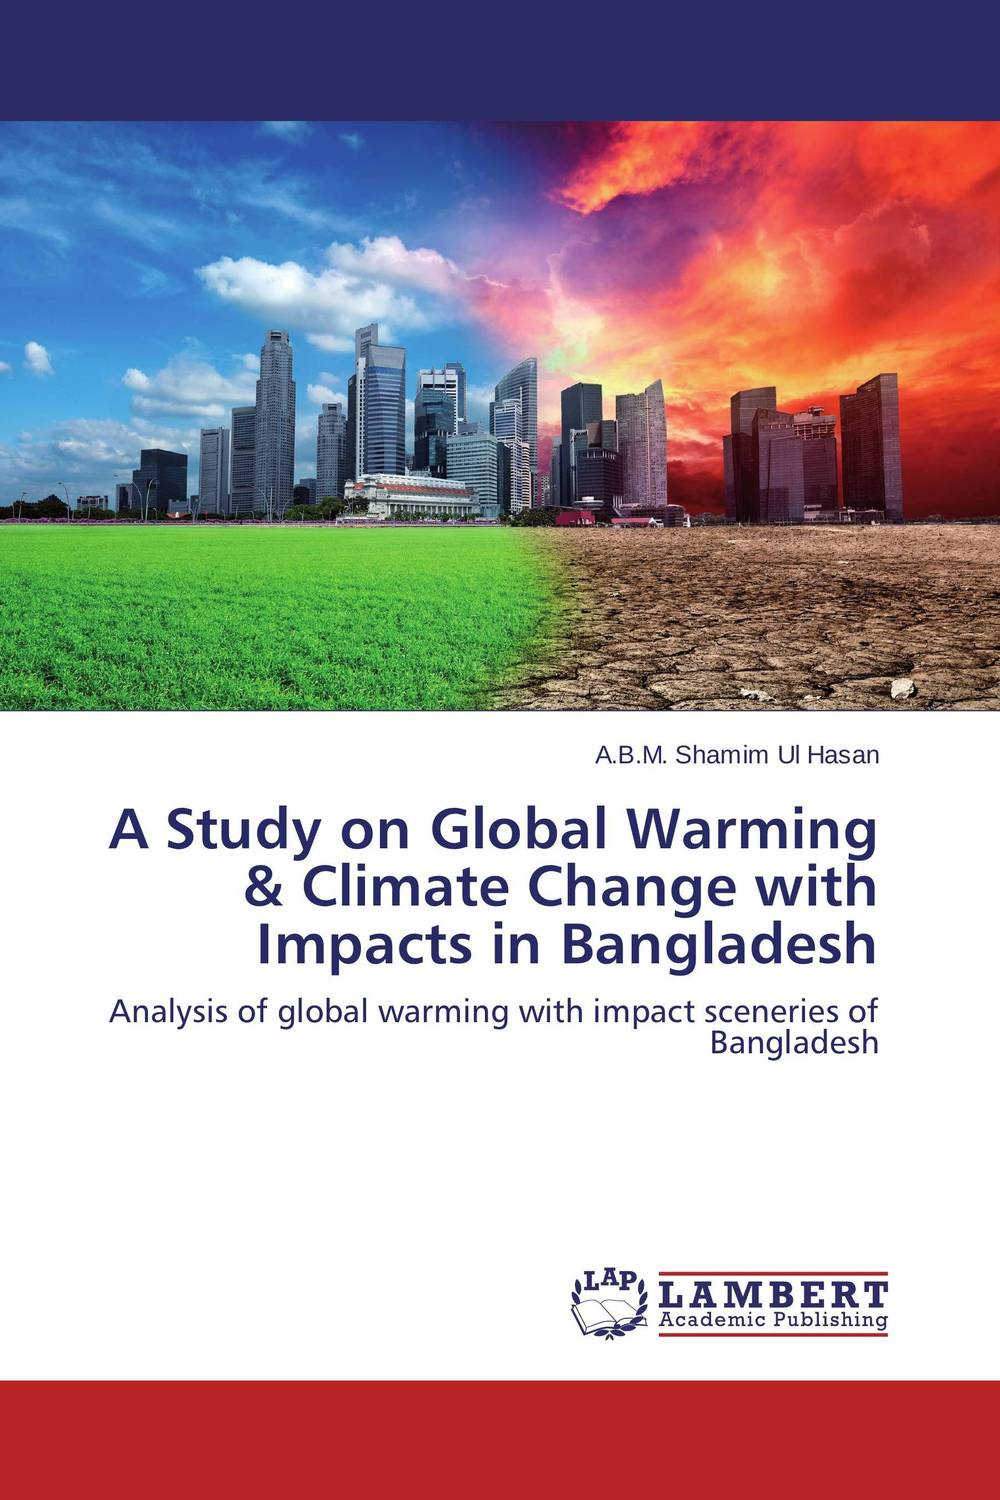 Фото A Study on Global Warming & Climate Change with Impacts in Bangladesh the impacts of partnership on global value chain and suppliers